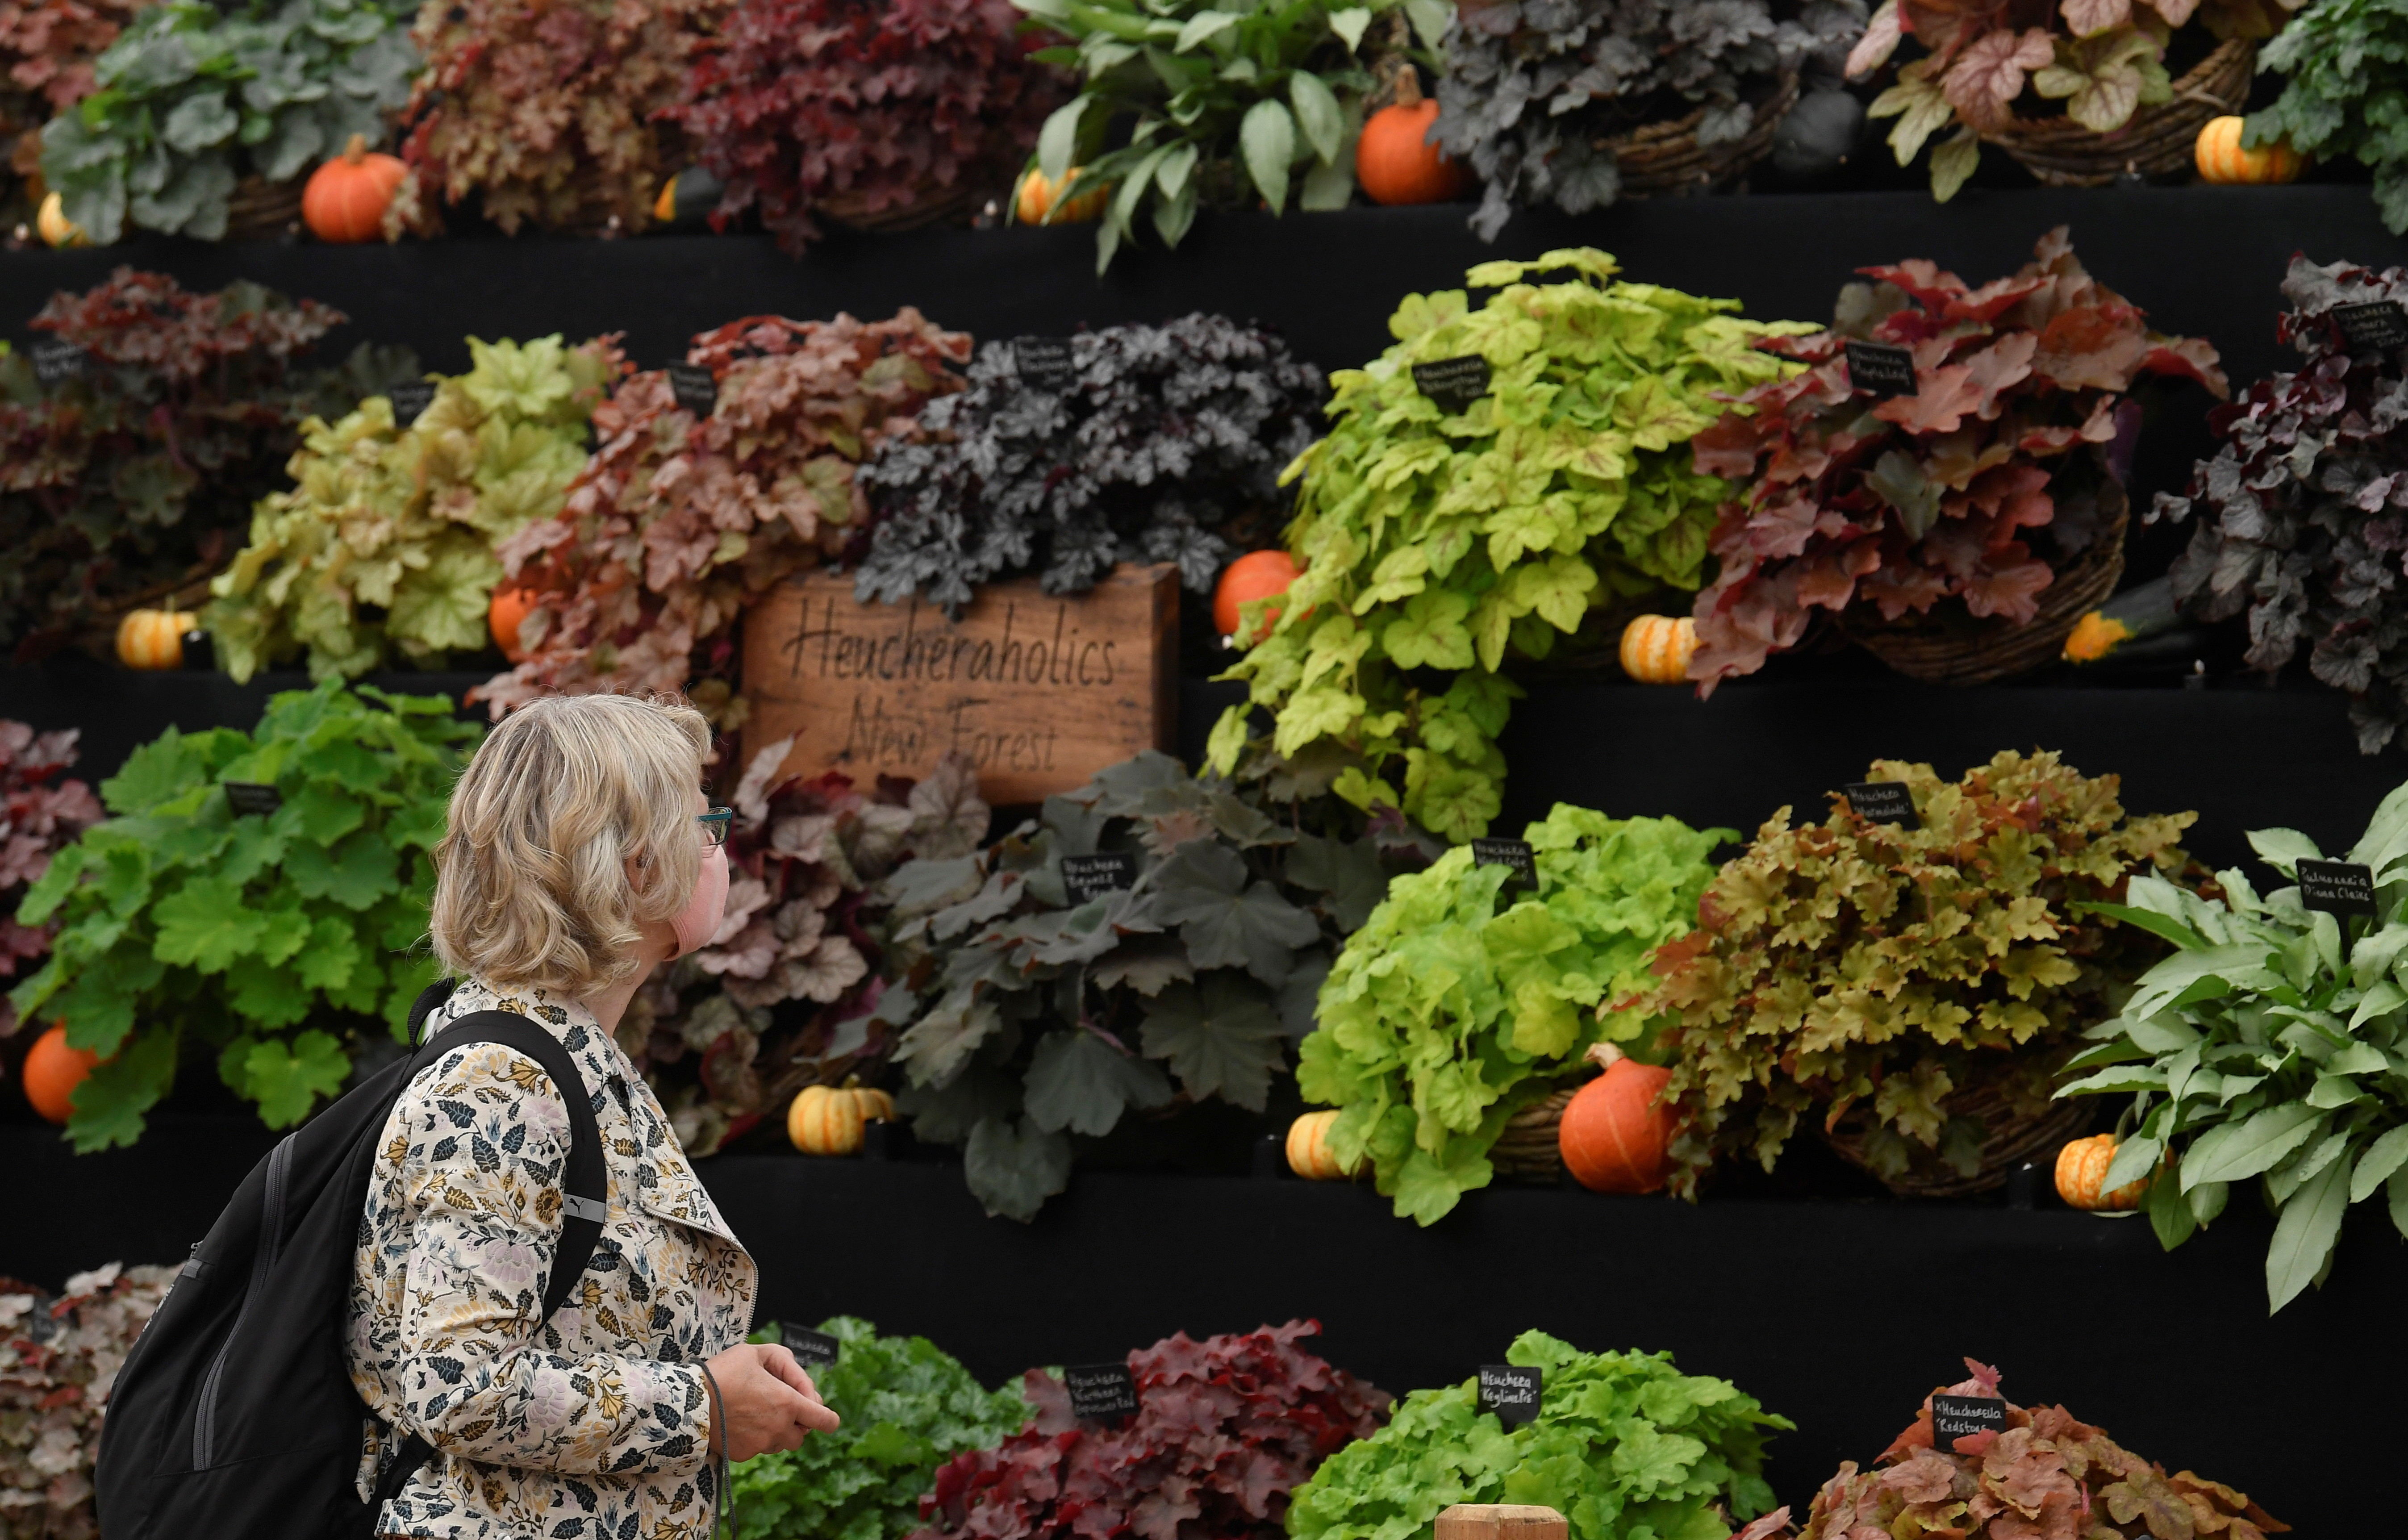 A visitor views a display at the RHS Chelsea Flower Show, delayed from its usual spring dates because of lockdown restrictions amid the spread of the coronavirus disease (COVID-19) pandemic, London, Britain, September 21, 2021. REUTERS/Toby Melville - RC2BUP9SVJ3E